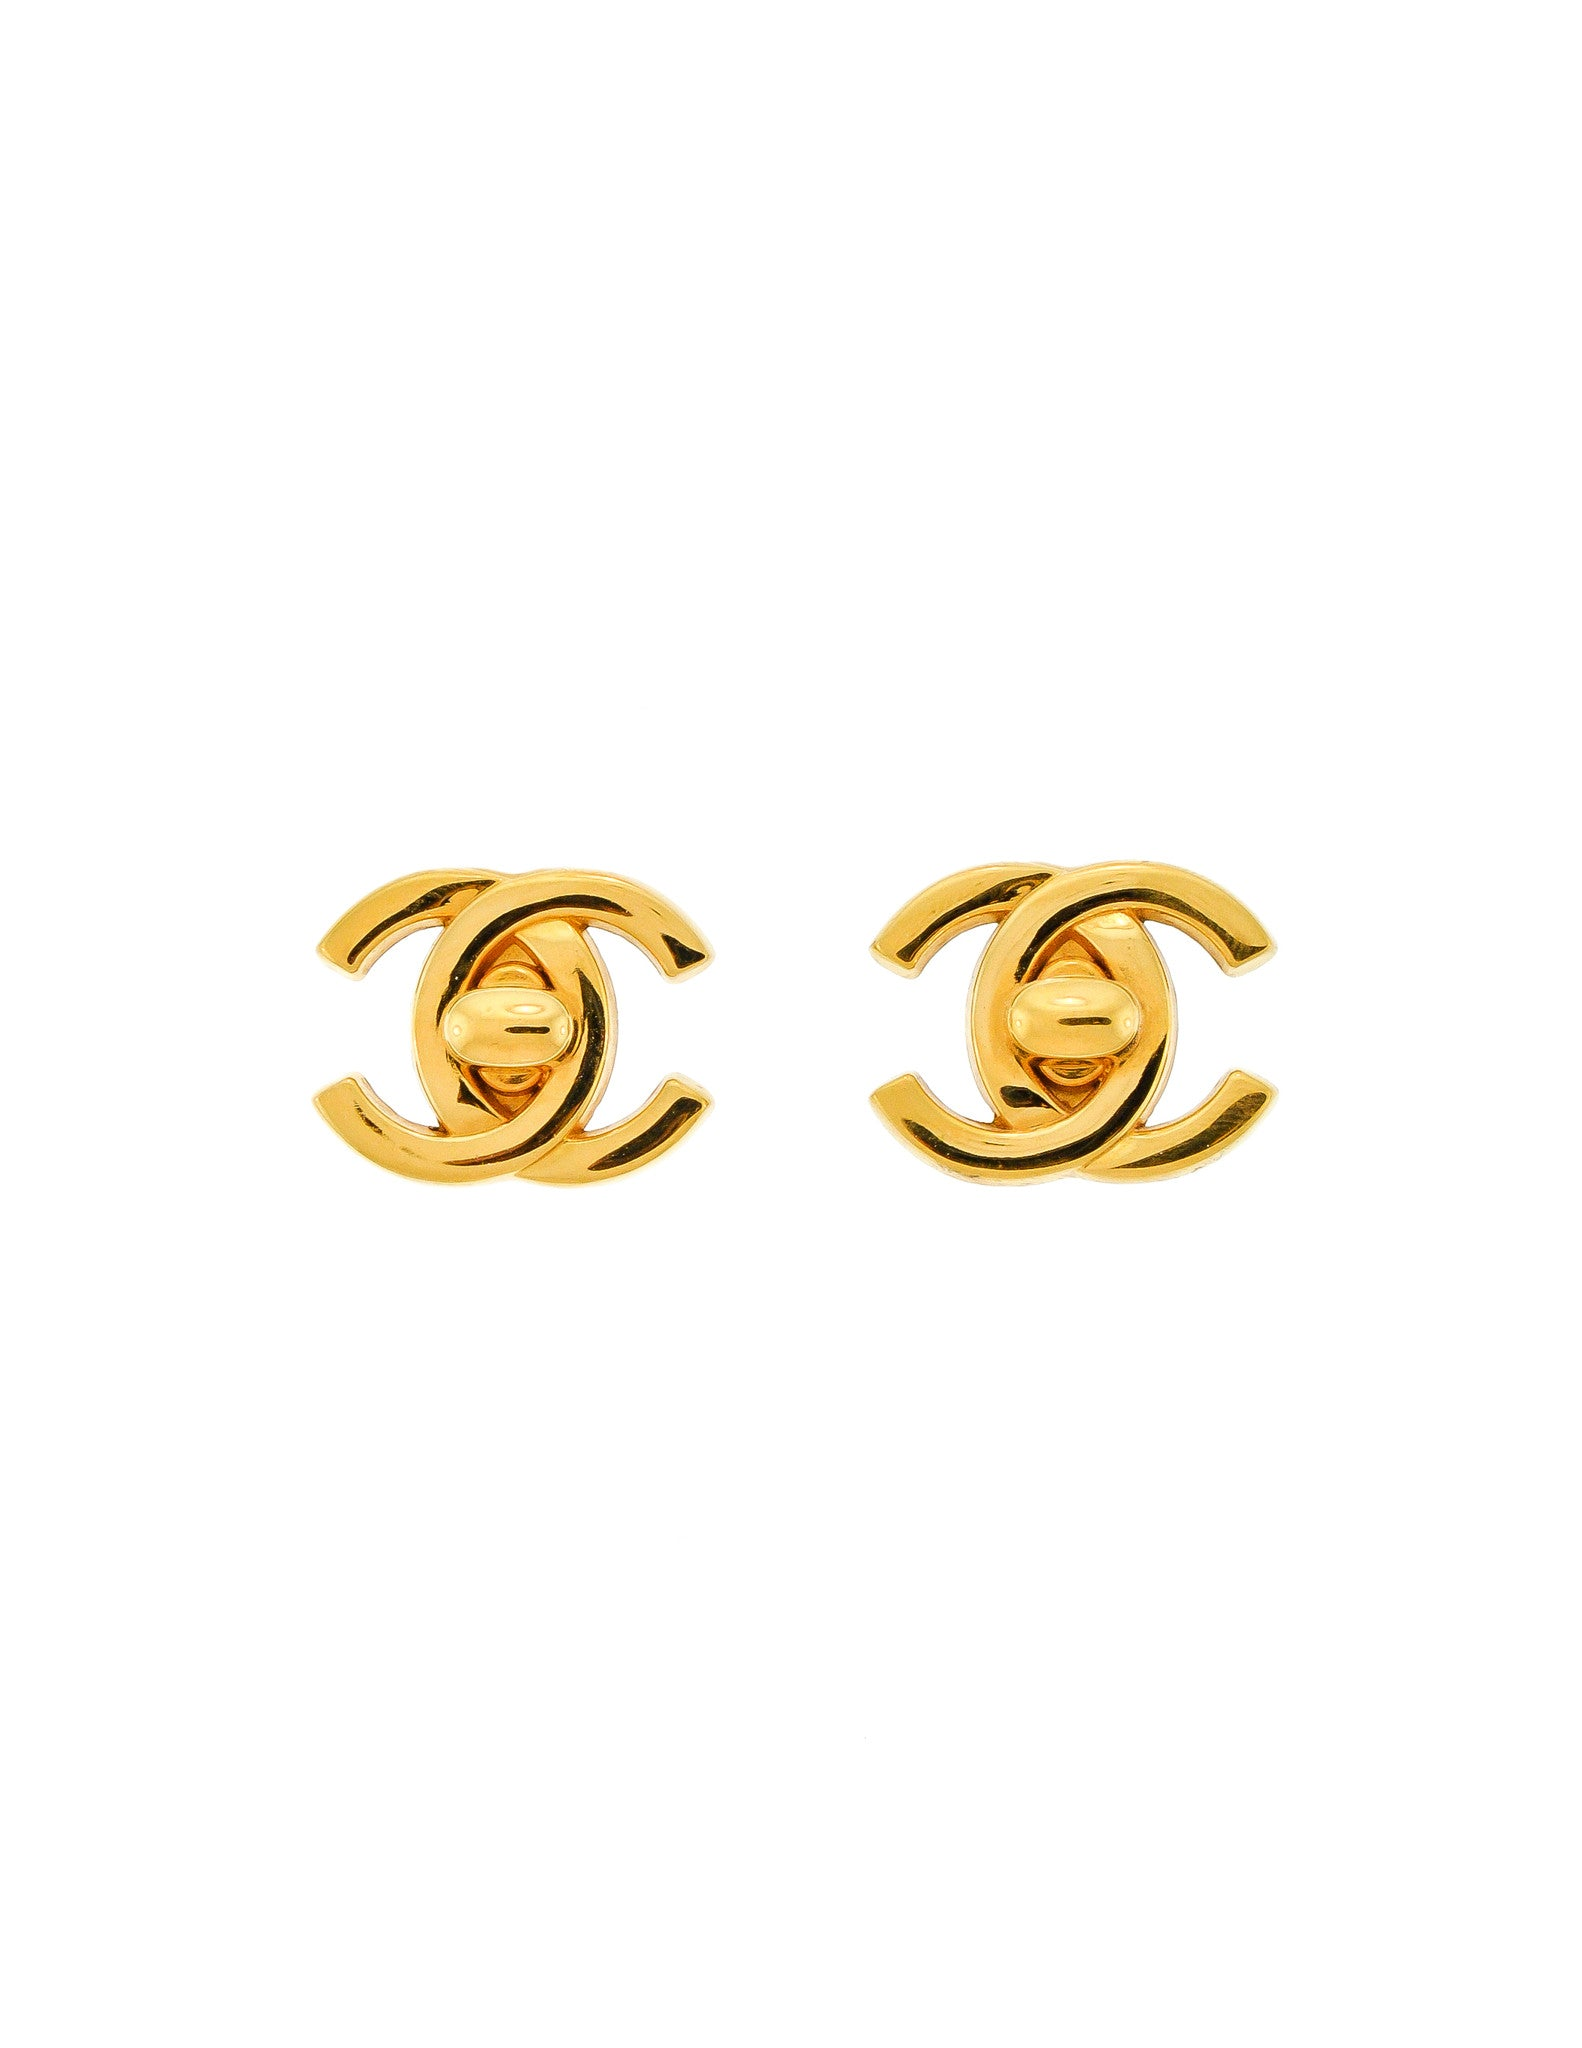 Chanel Vintage Mini Turn Lock CC Clasp Earrings - Amarcord Vintage Fashion  - 1